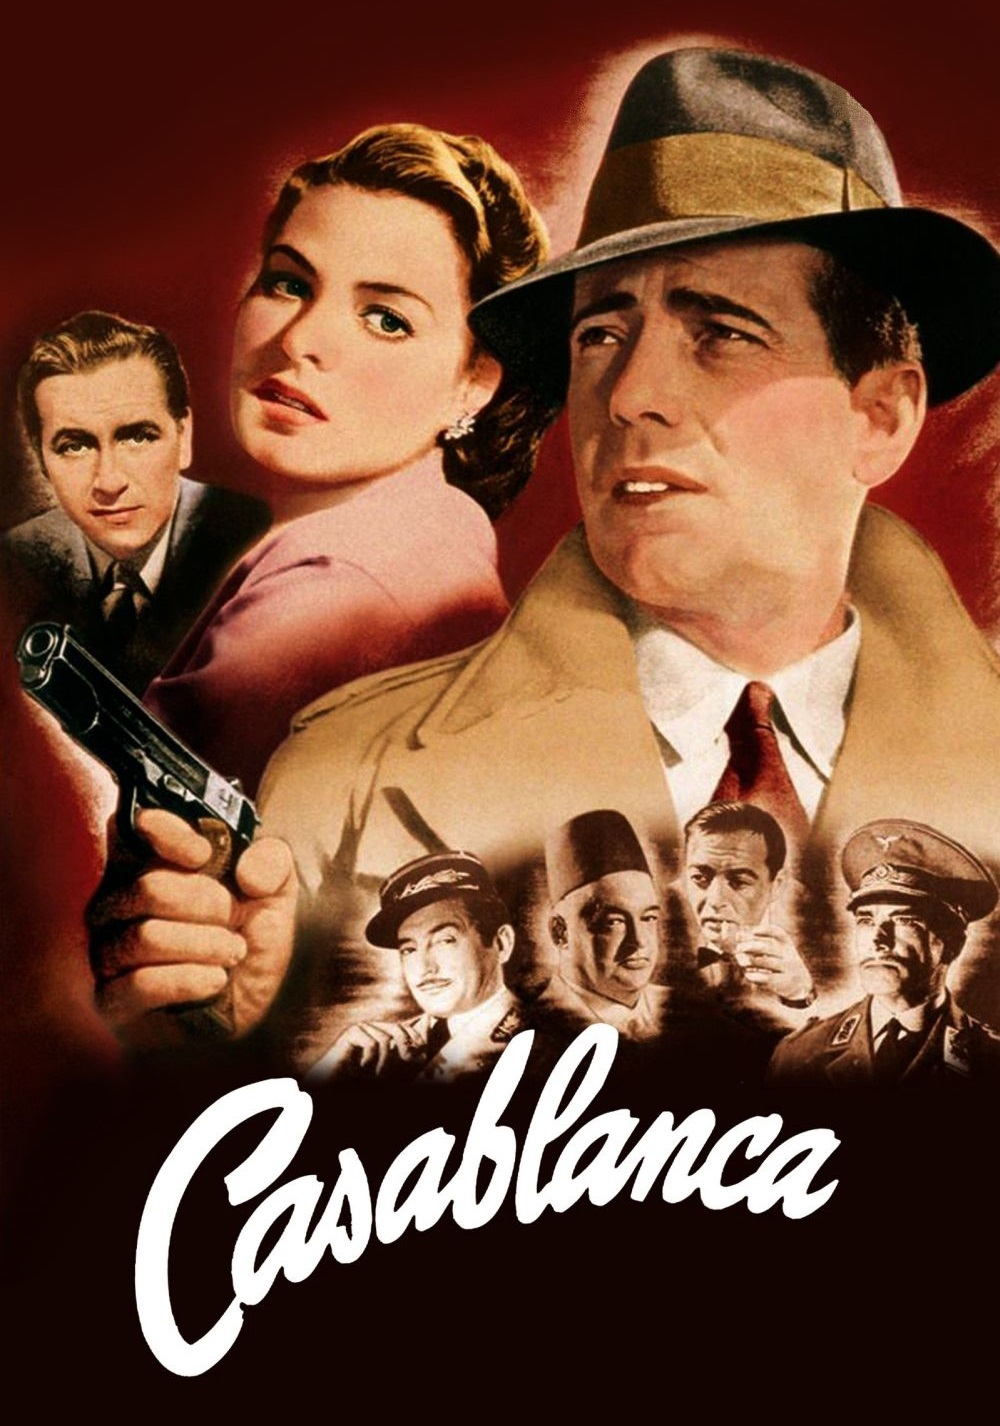 Casablanca - In Casablanca in December 1941, a cynical American expatriate encounters a former lover, with unforeseen complications.